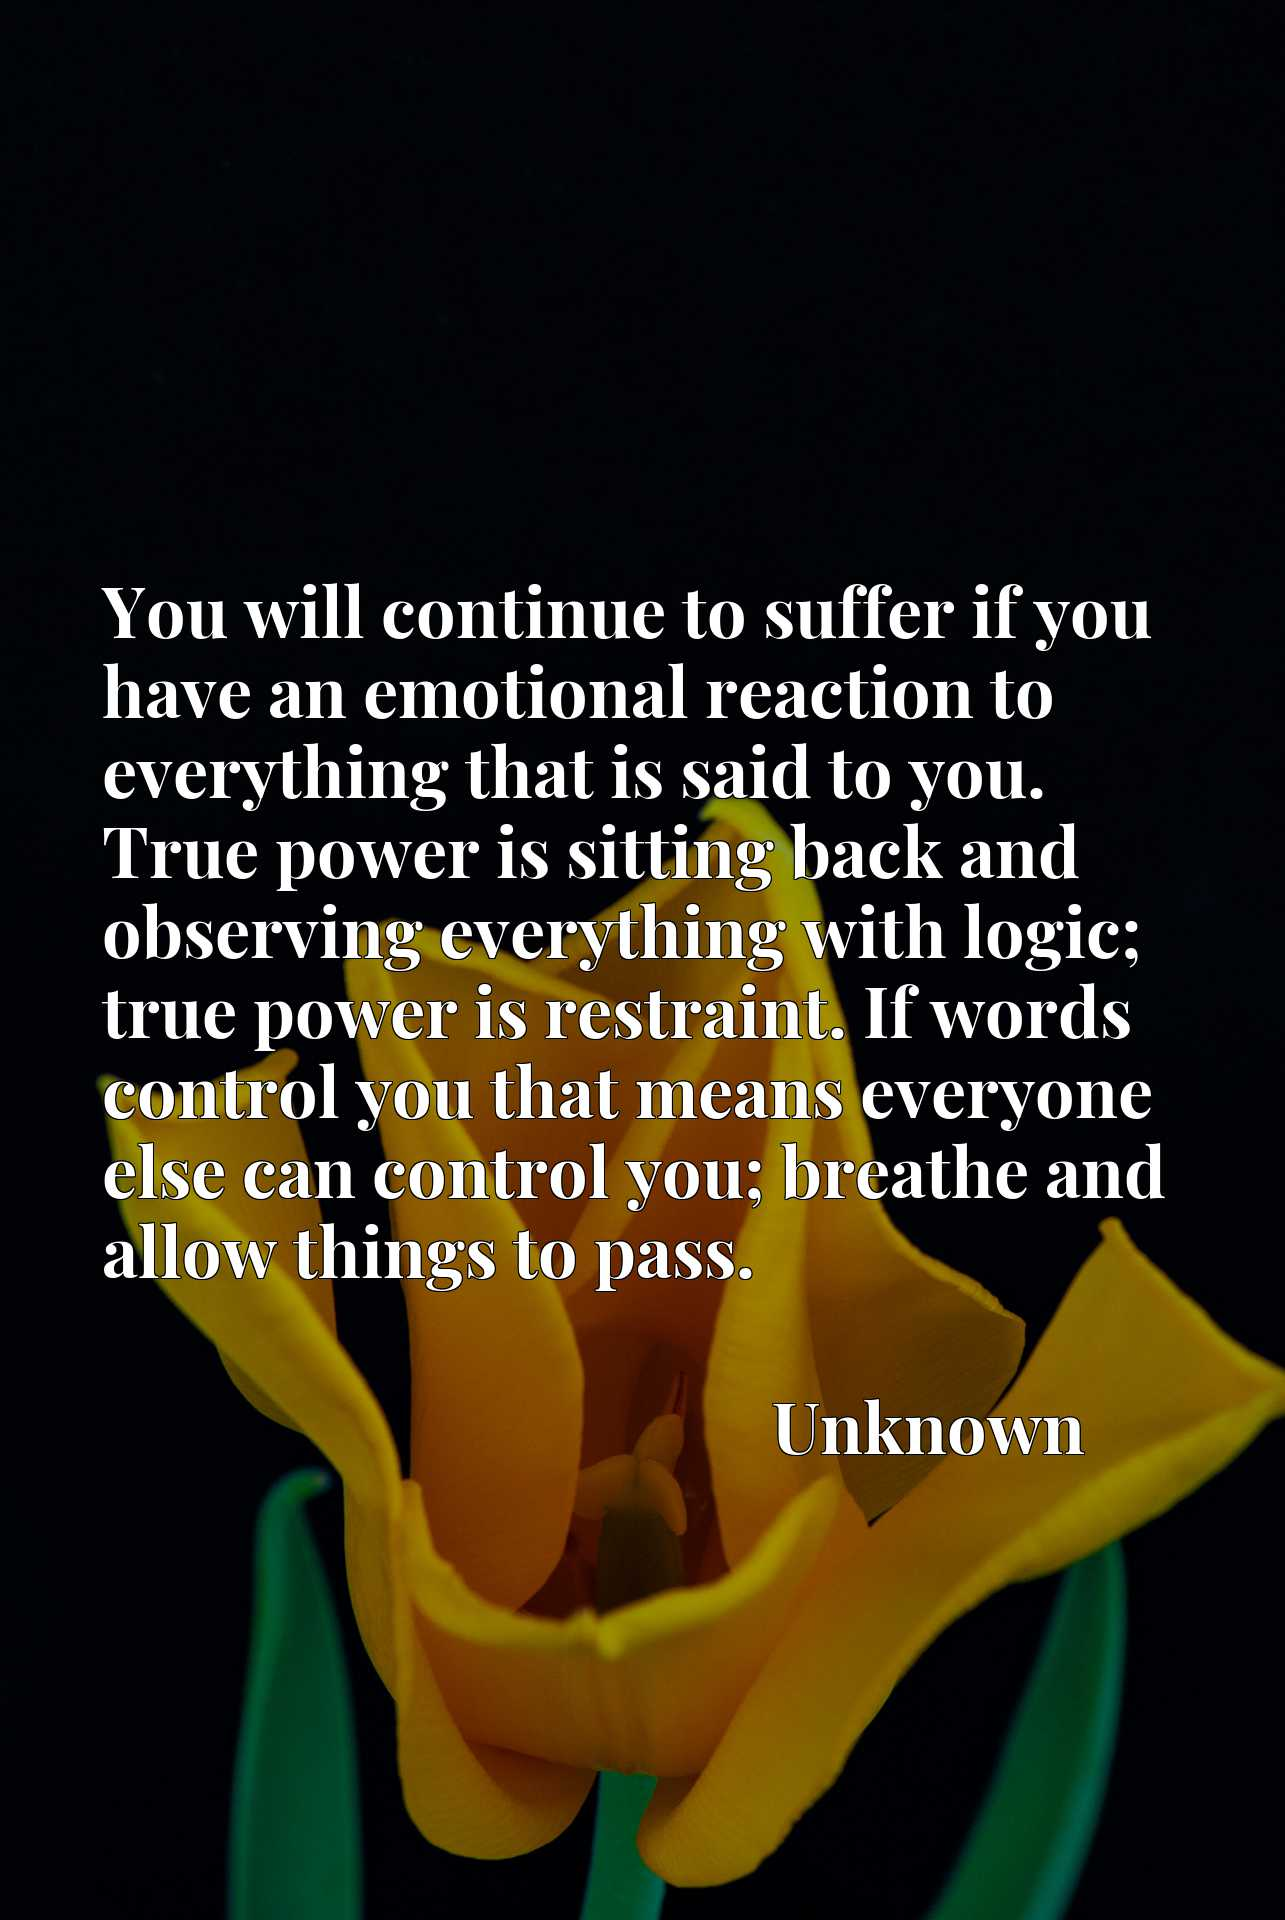 Quote Picture :You will continue to suffer if you have an emotional reaction to everything that is said to you. True power is sitting back and observing everything with logic; true power is restraint. If words control you that means everyone else can control you; breathe and allow things to pass.